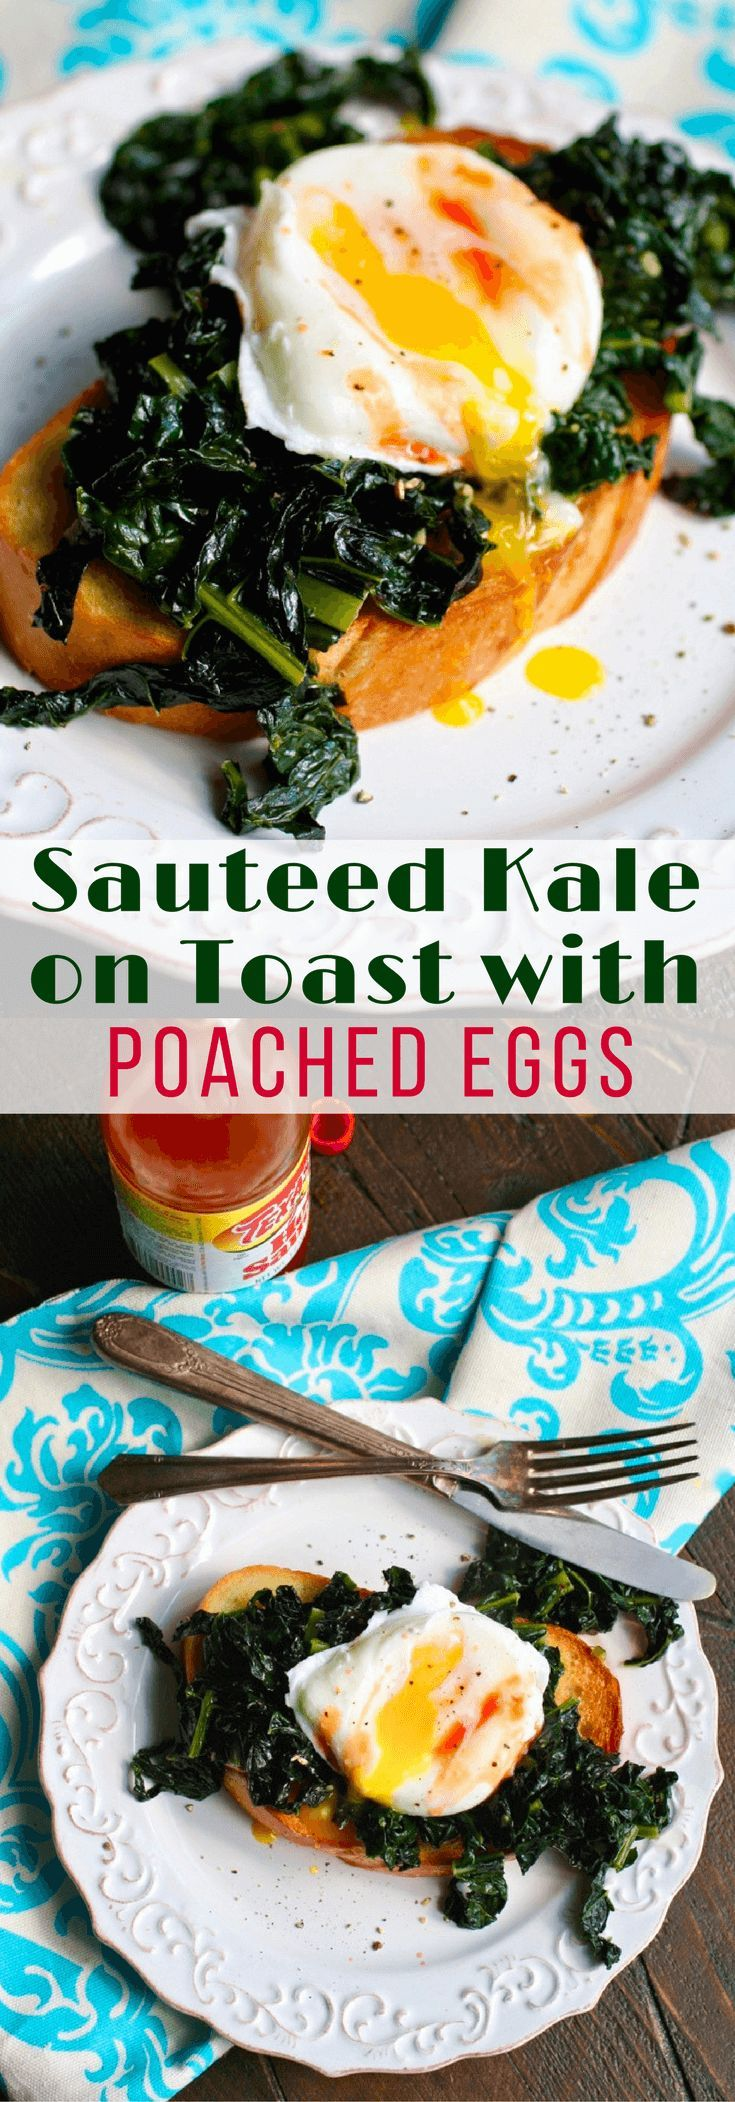 Sauteed Kale on Toast with Poached Eggs makes a scrumptious breakfast dish. You'll love how easy it is to make!